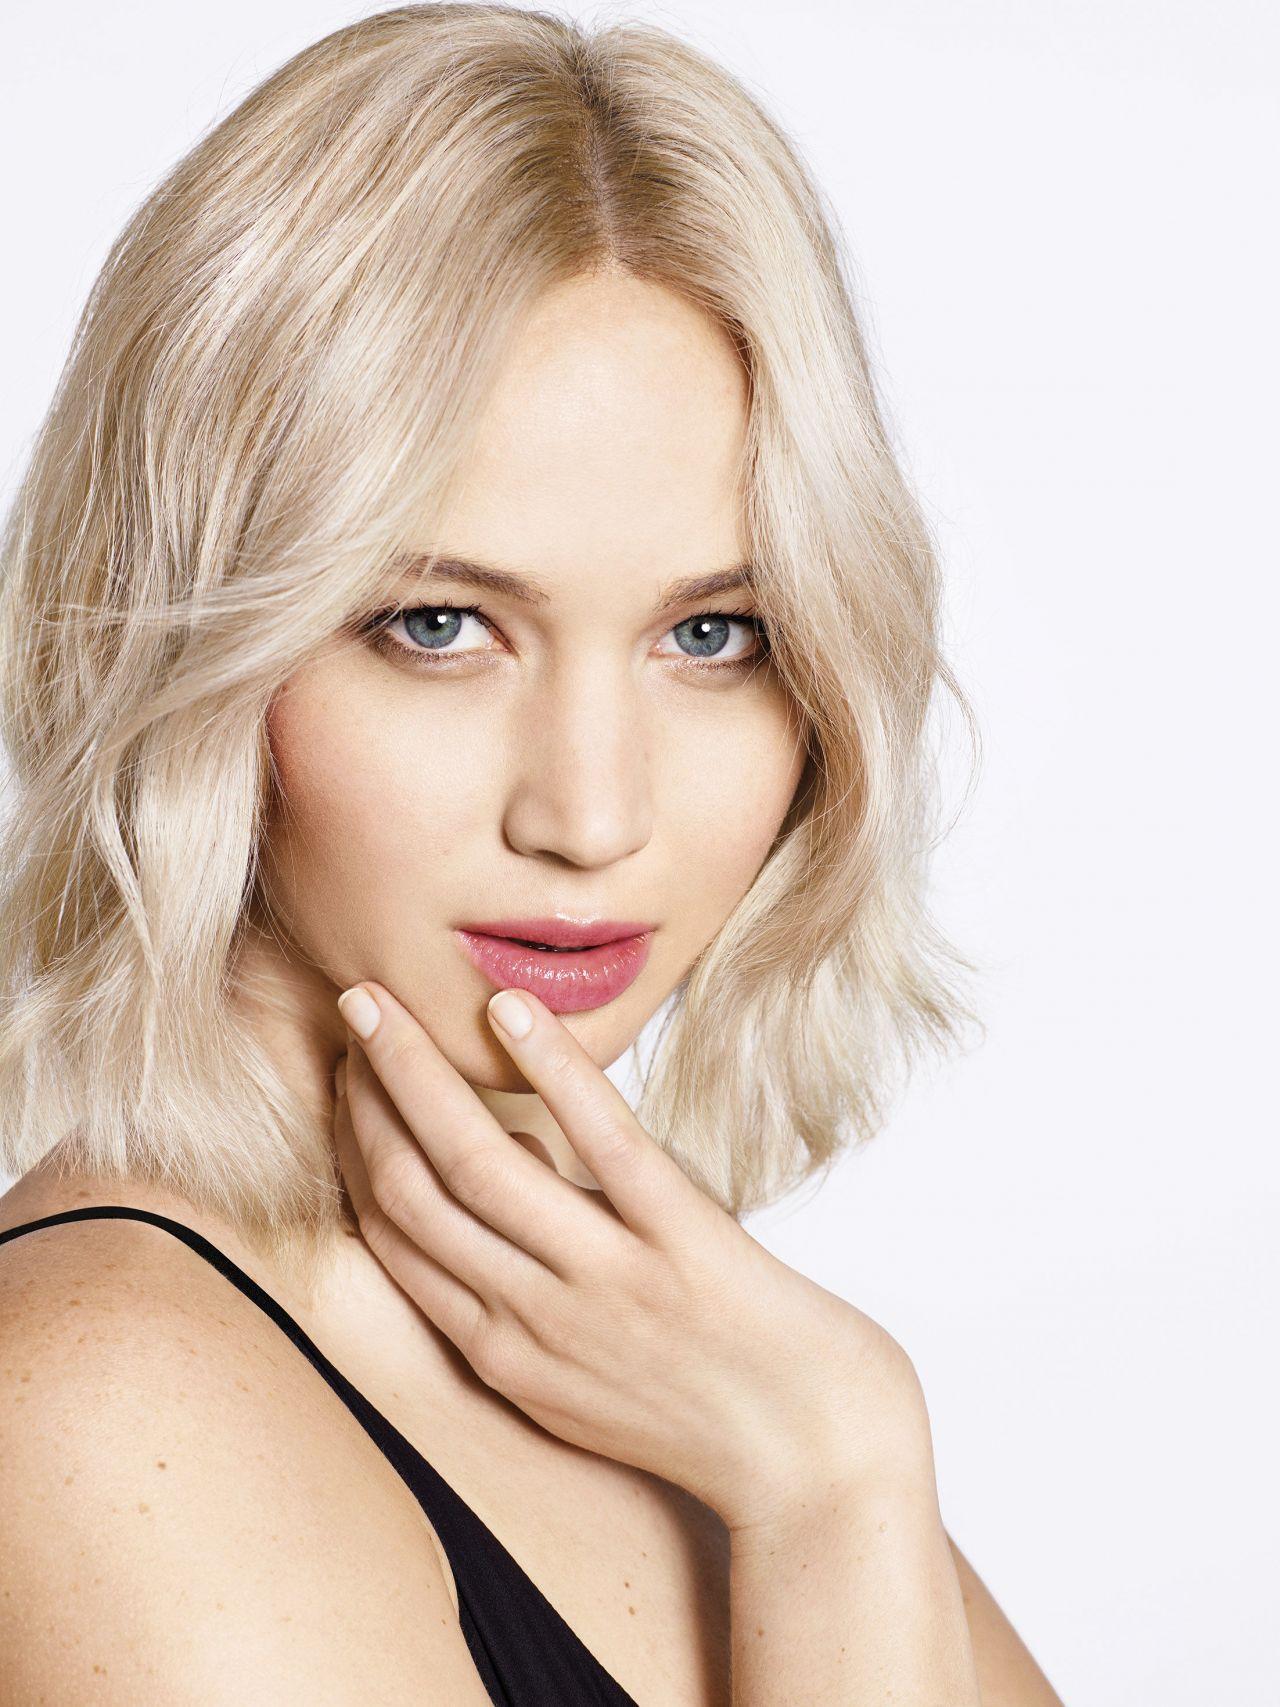 Jennifer Lawrence - Photo Shoot For Harpers Bazaar -4608